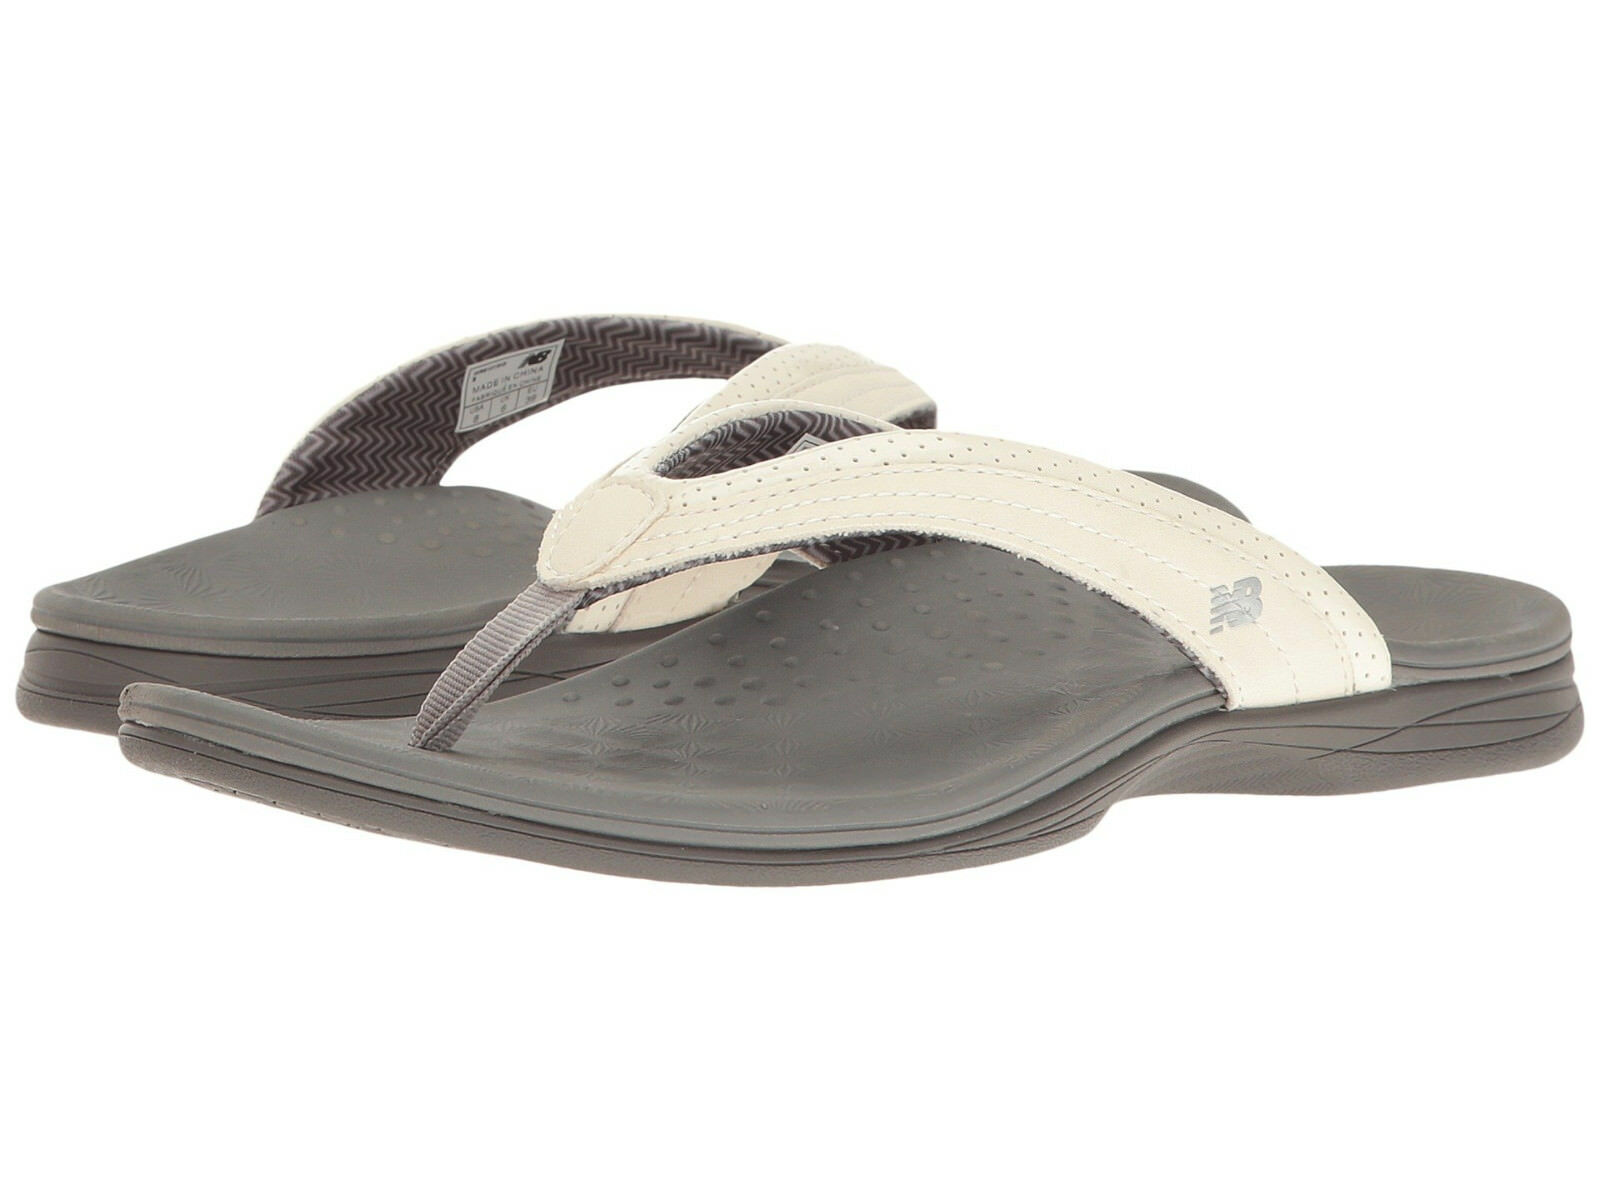 Women New Balance Hayden Flip Flop Sandal WR6101WG White Grey 100% Original New